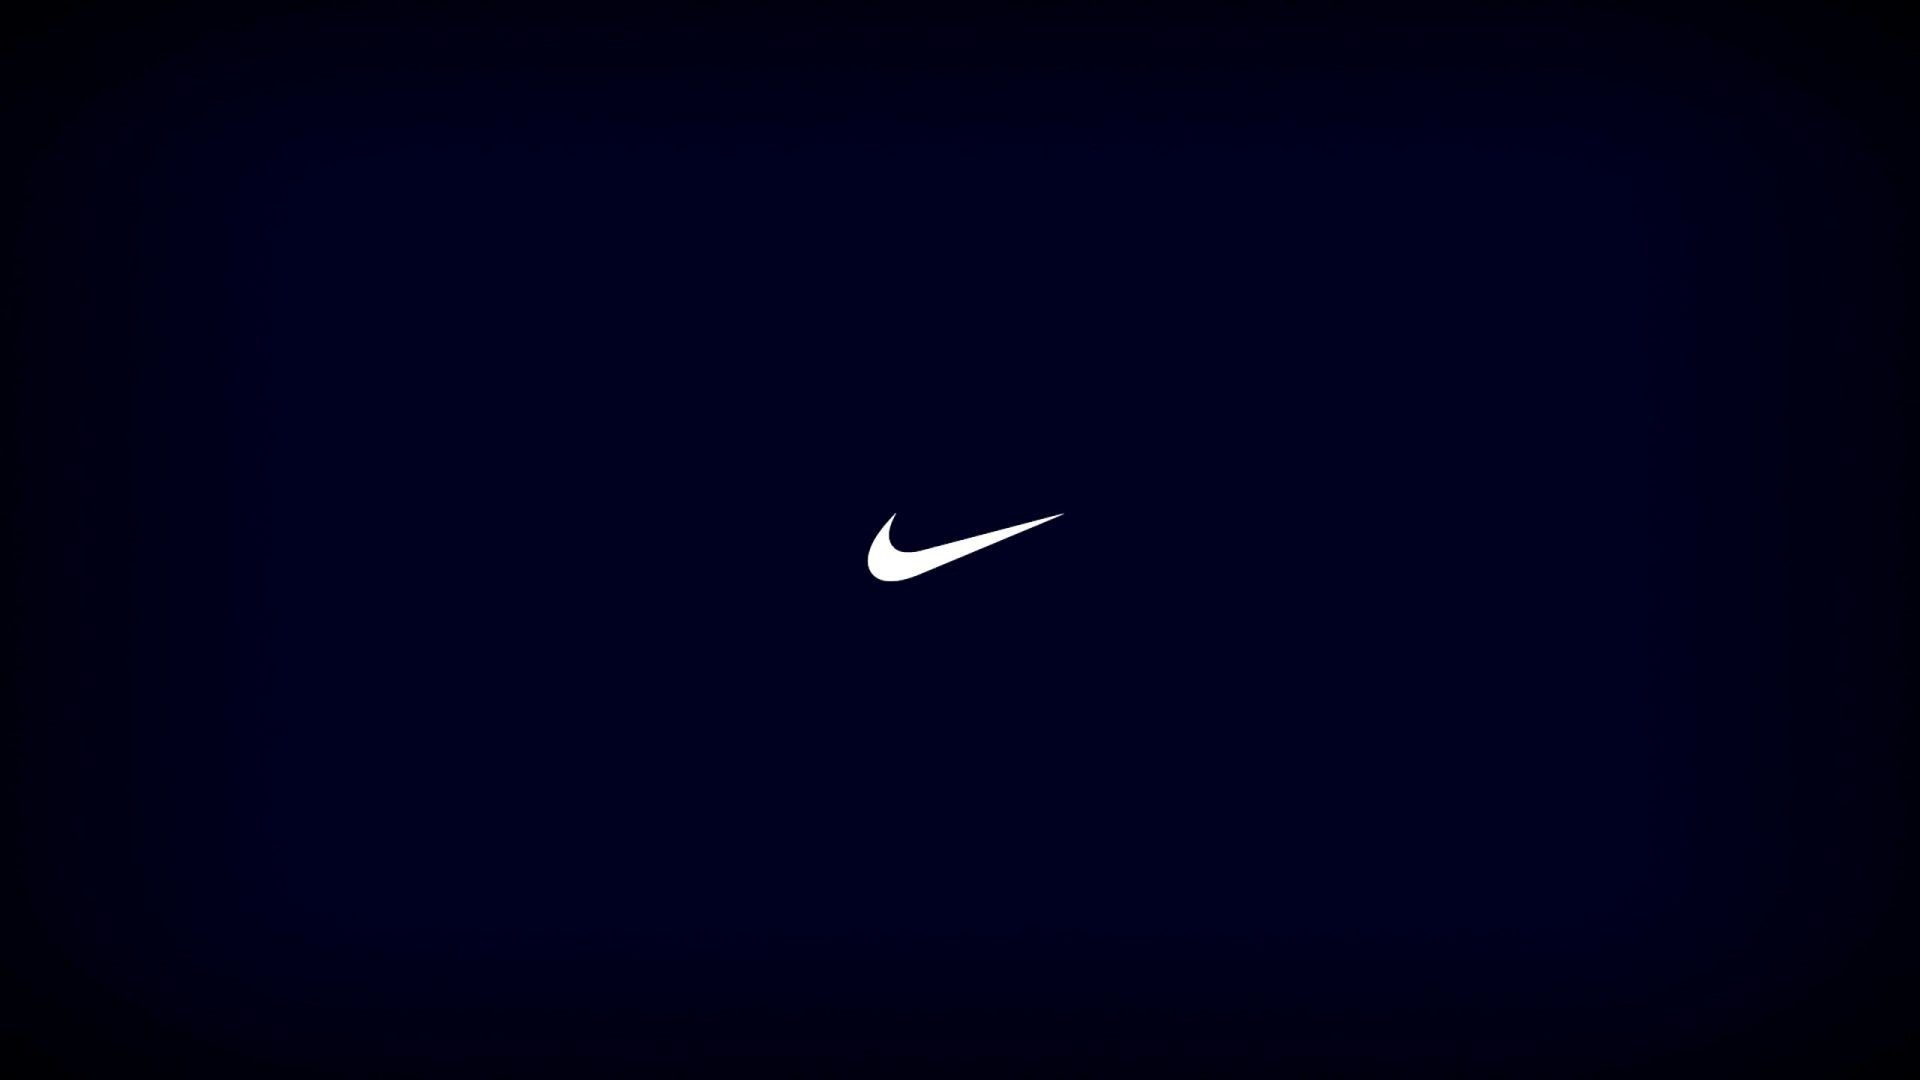 Res: 1920x1080,  Nike Logo On The Blue Background Wallpaper Des Wallpaper .